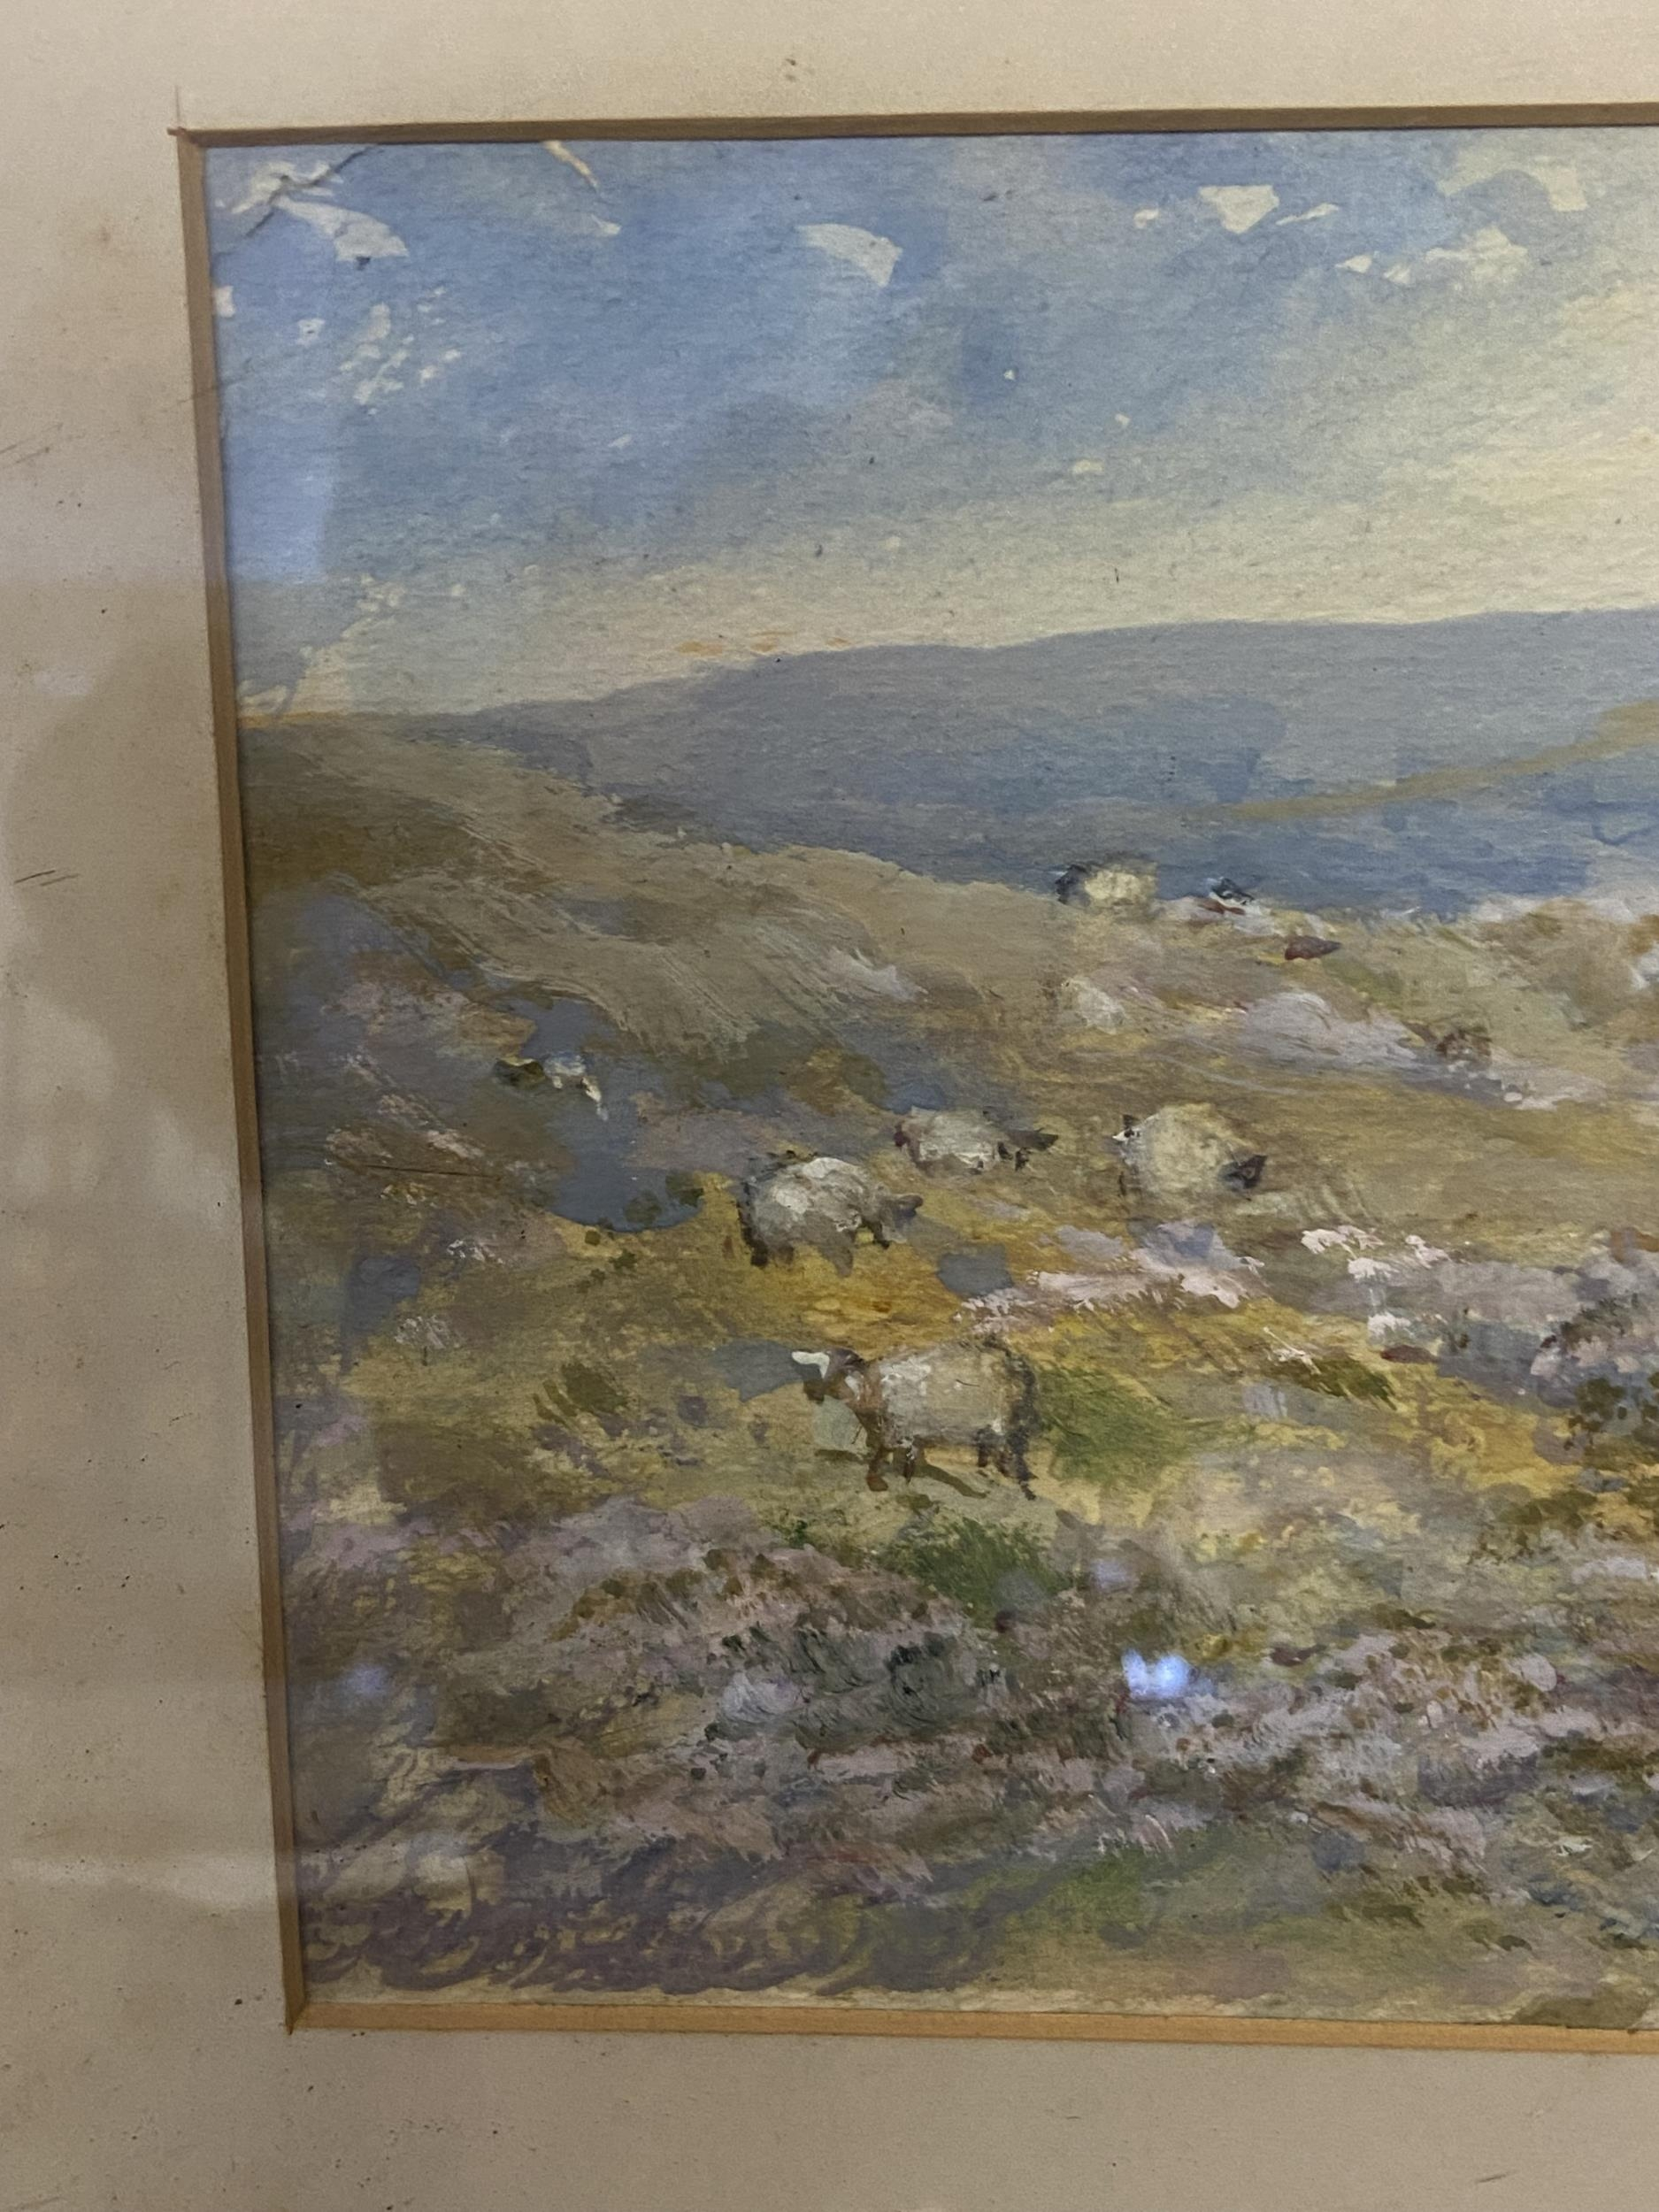 Antique original watercolour depicting sheep in a valley scene. Signed by the artist [Unreadable] [ - Image 3 of 6